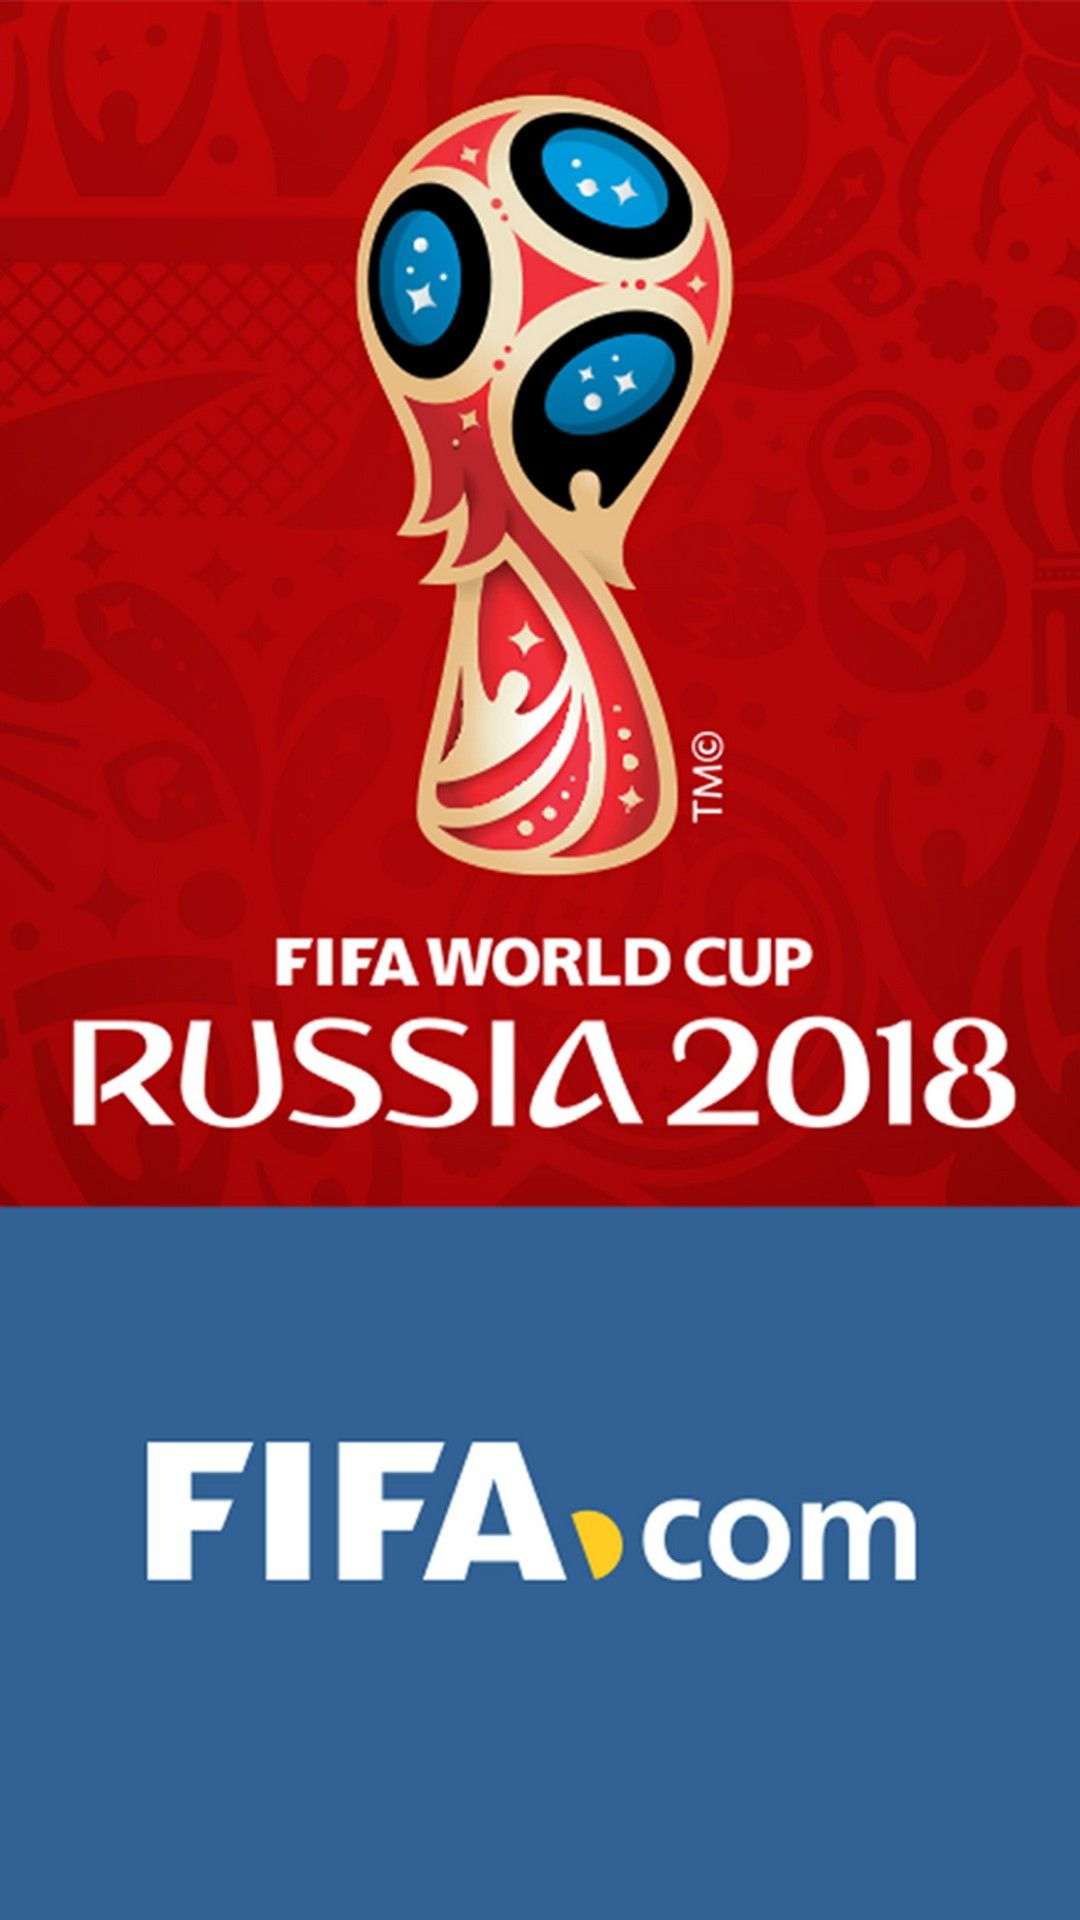 Russia 2018 Fifa World Cup Iphone Wallpaper